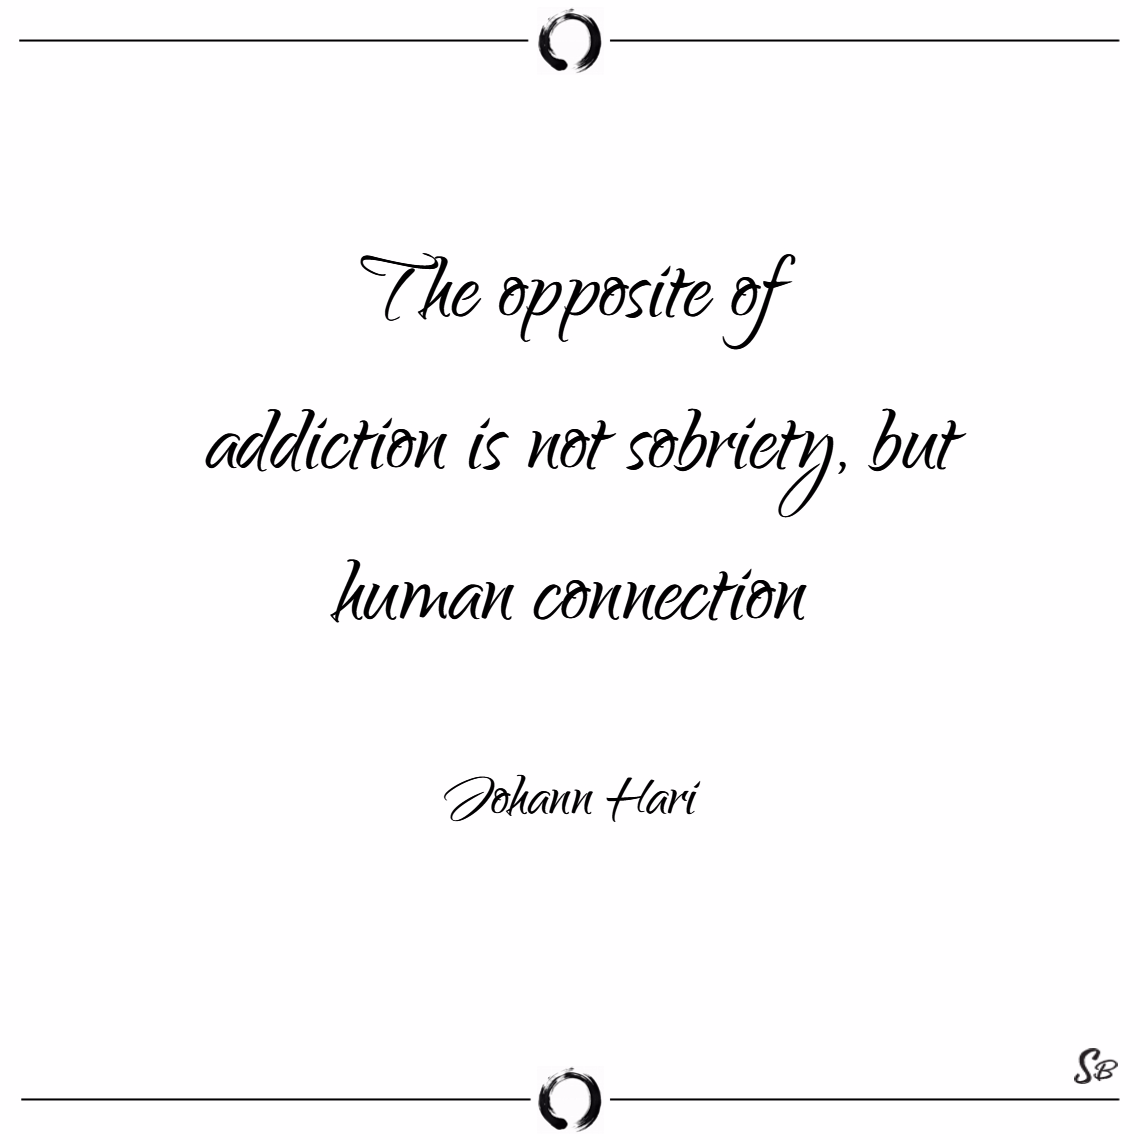 The opposite of addiction is not sobriety, but human connection. – johann hari